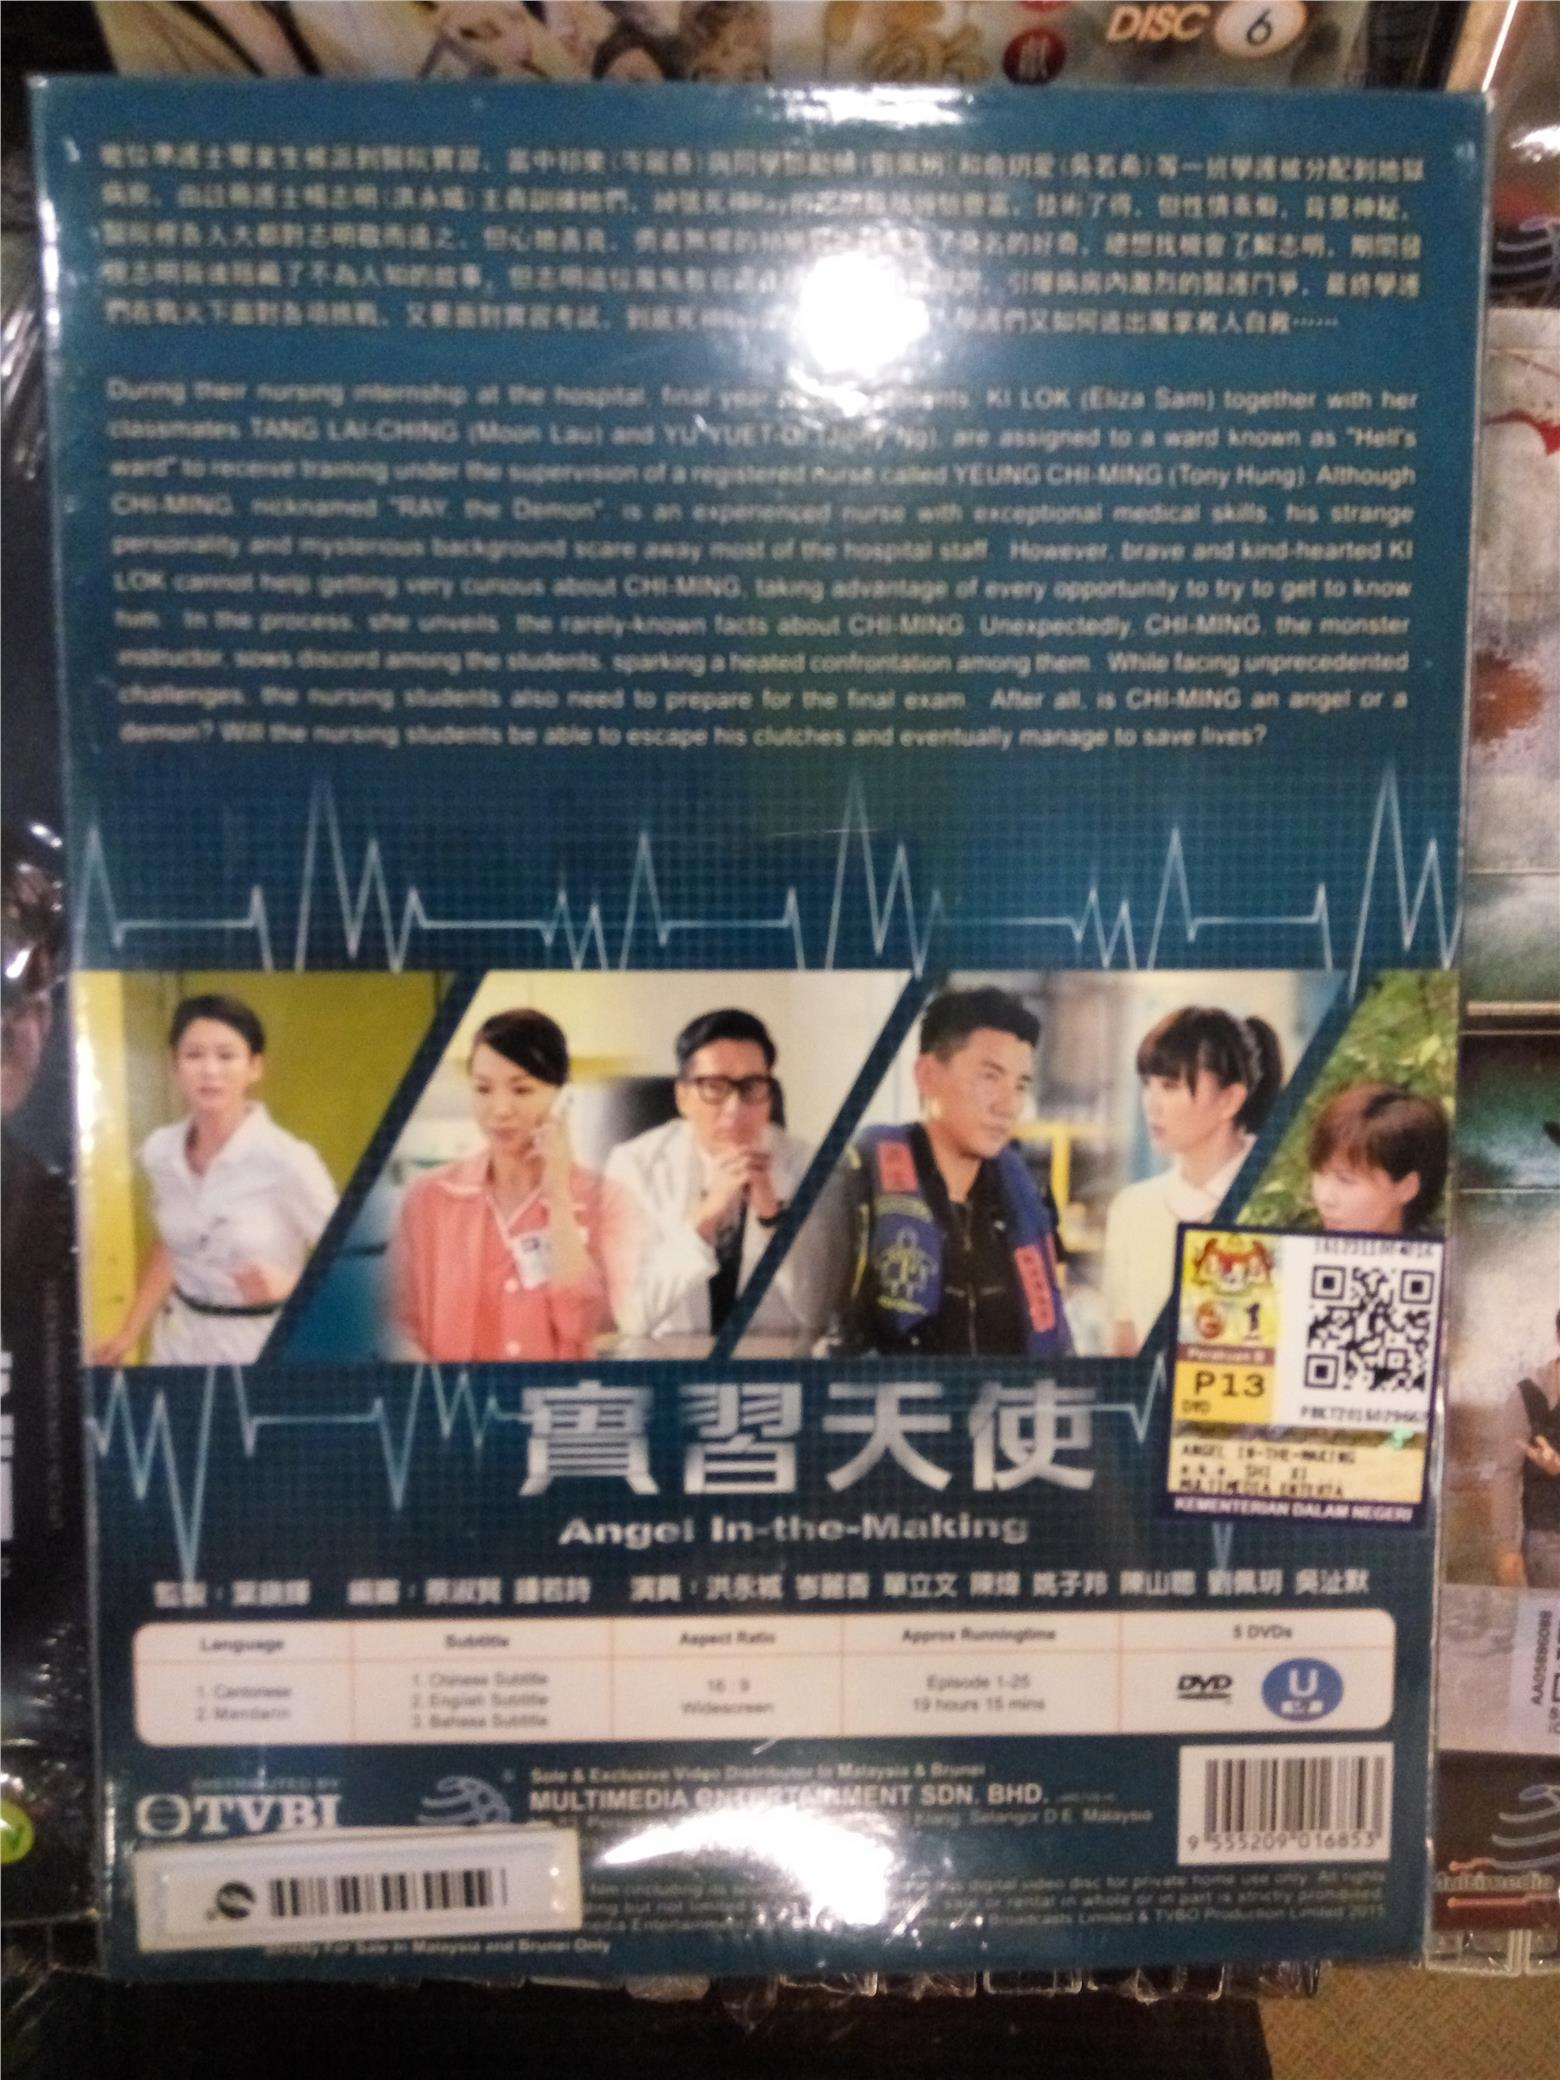 Angel In-The-Making - Complete TVB TV DVD Box Set